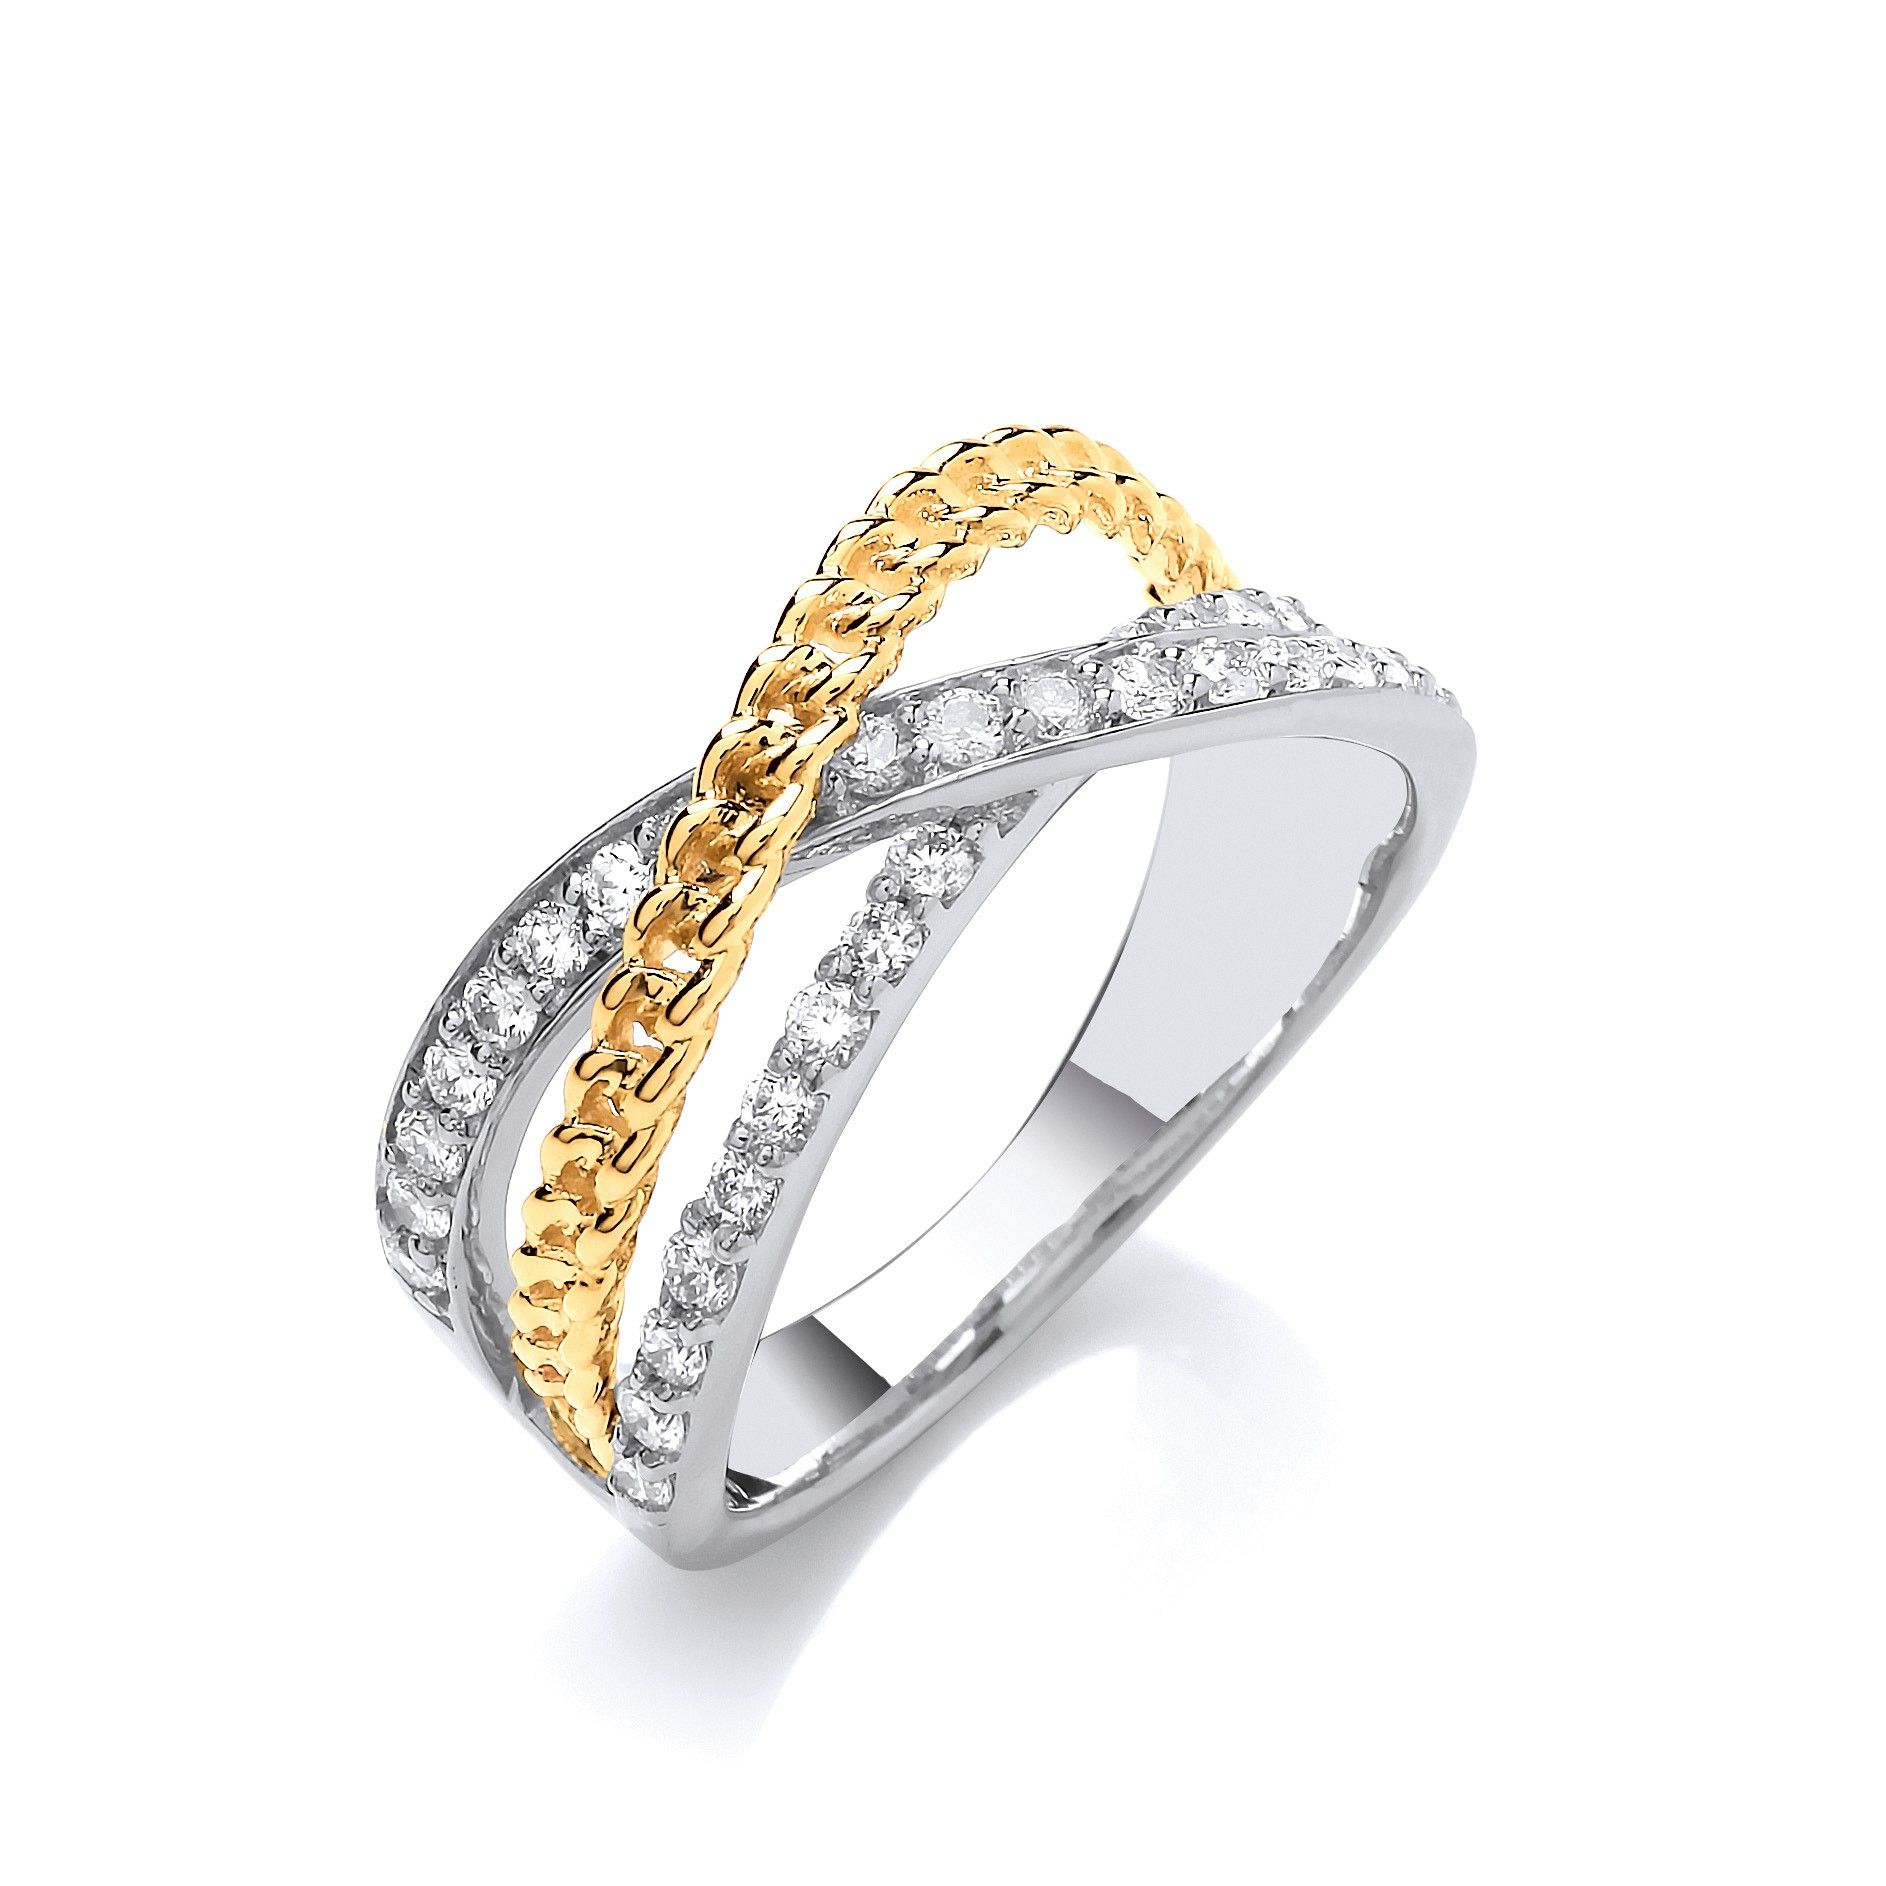 9ct White & Yellow Gold Cross Over 0.50cts Diamond Ring